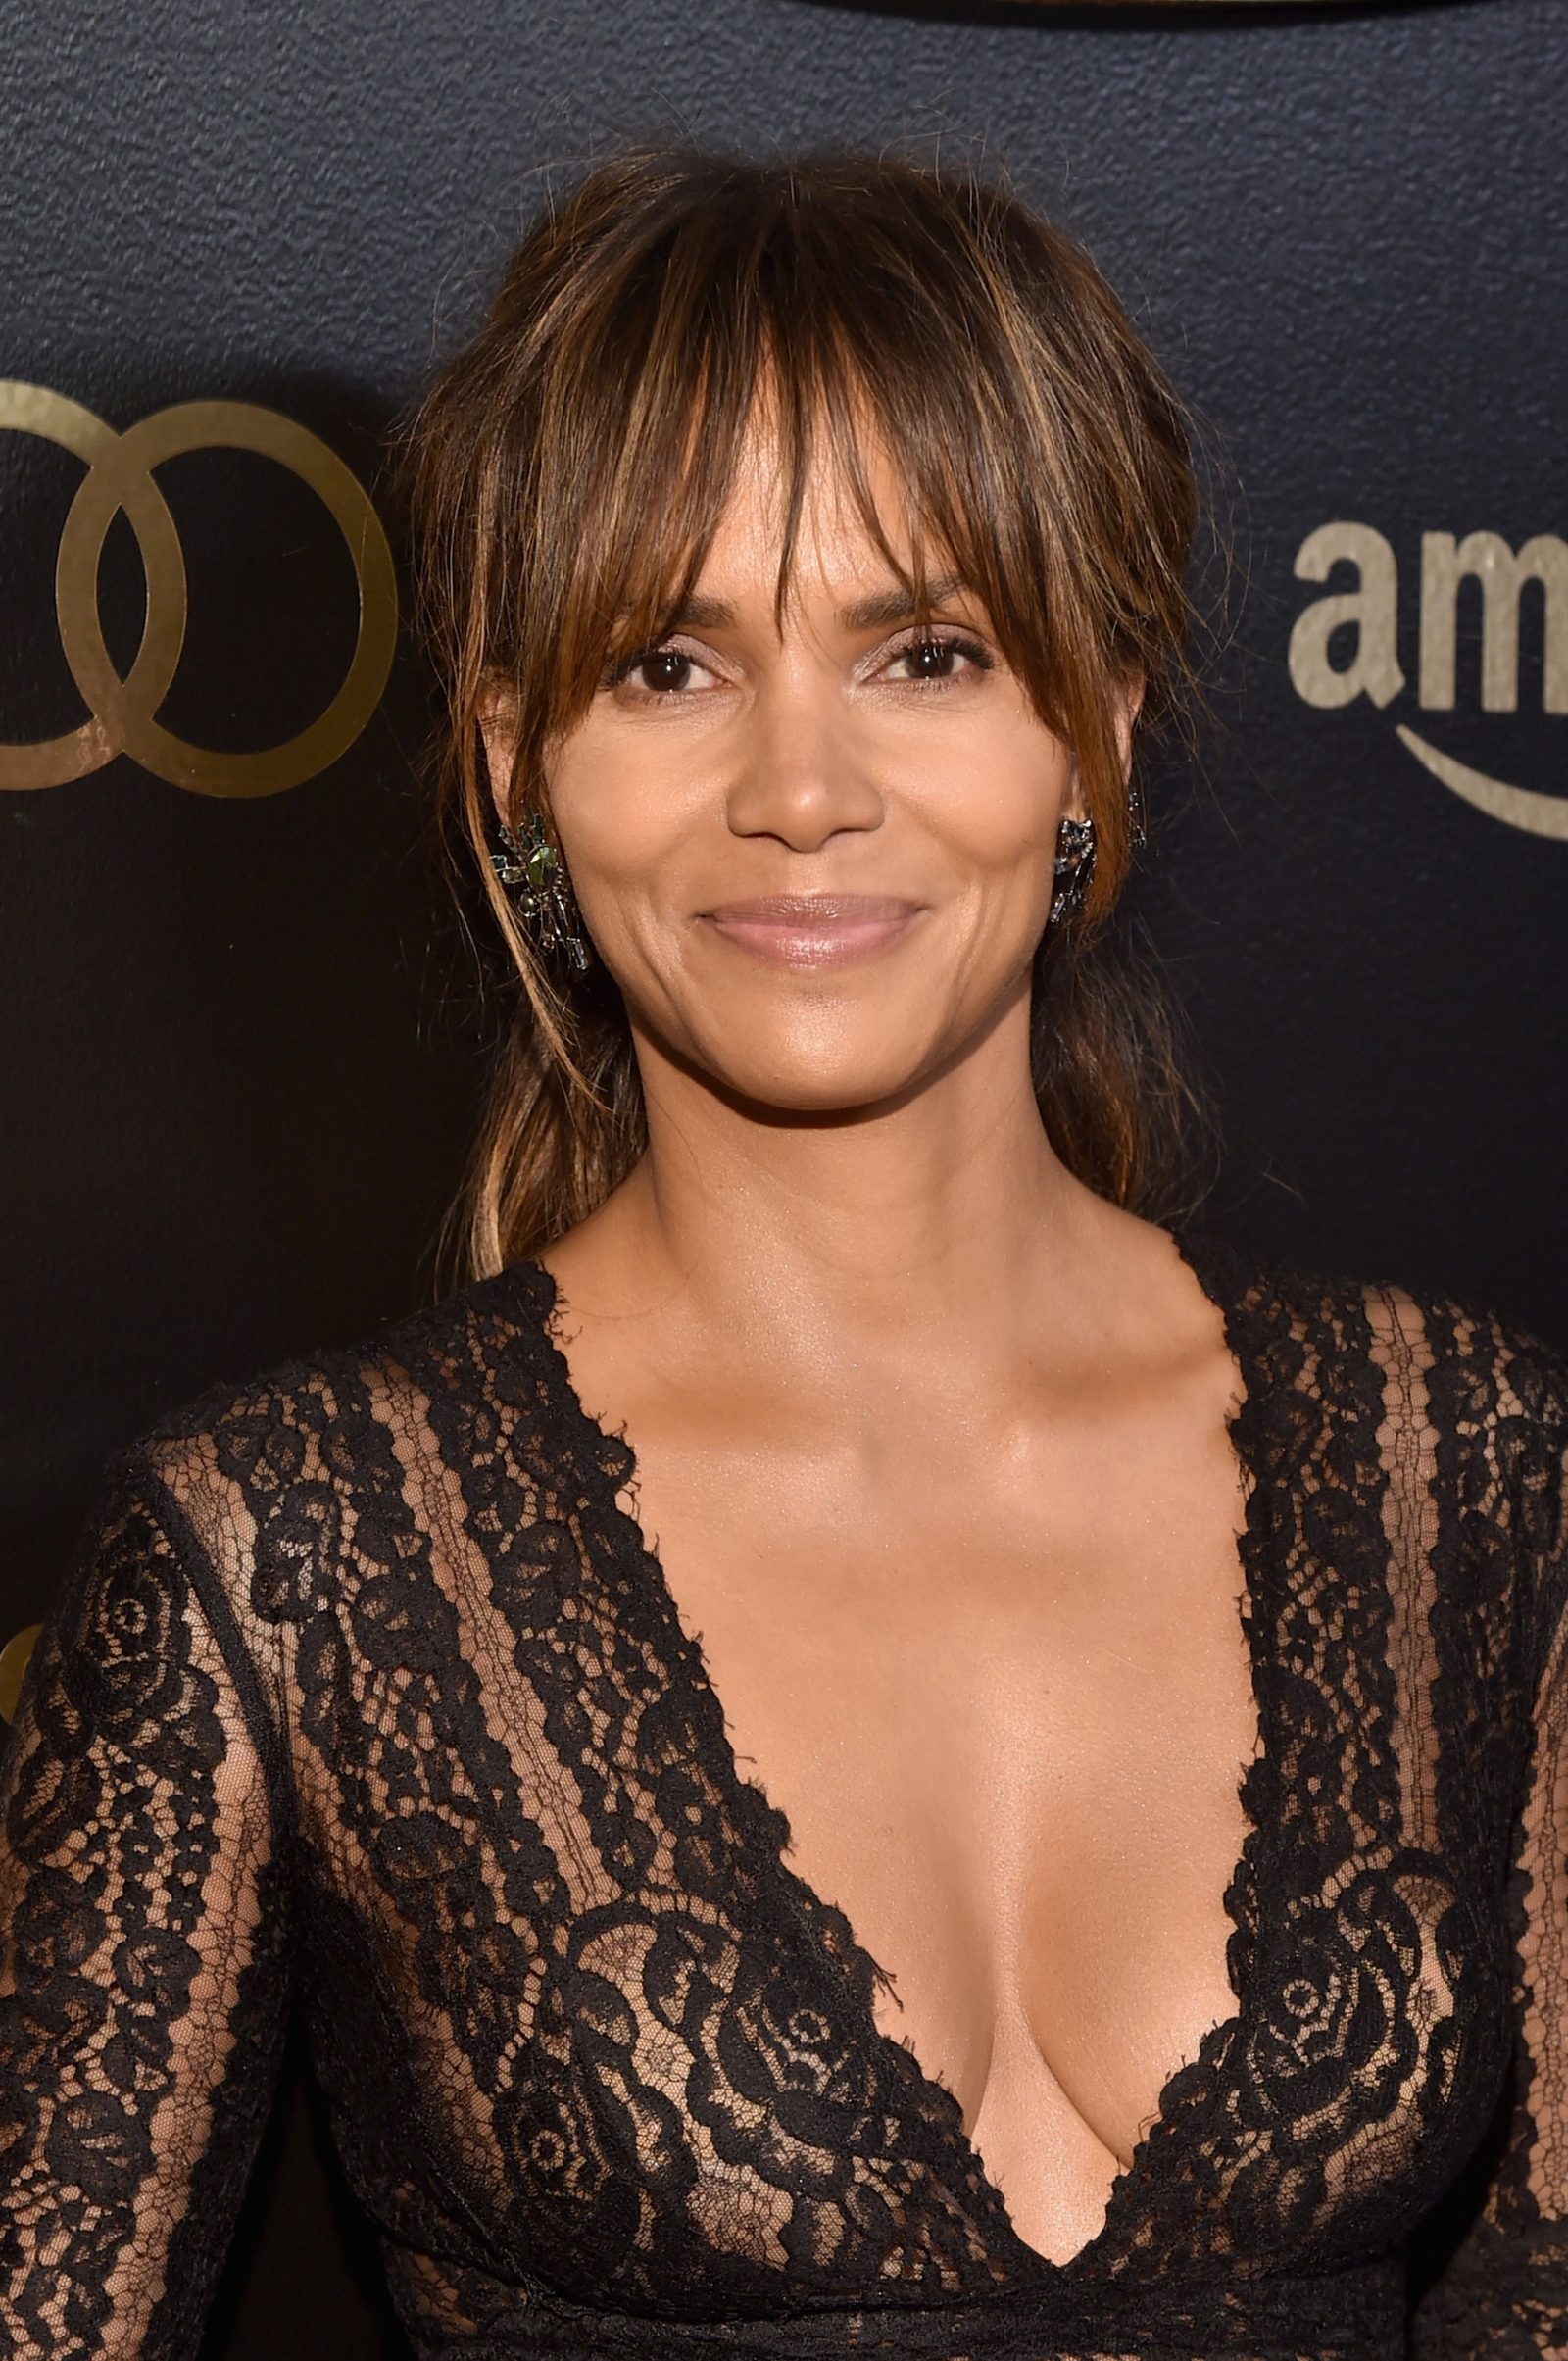 Halle Berry fans go wild over her photo in a completely ... Halle Berry